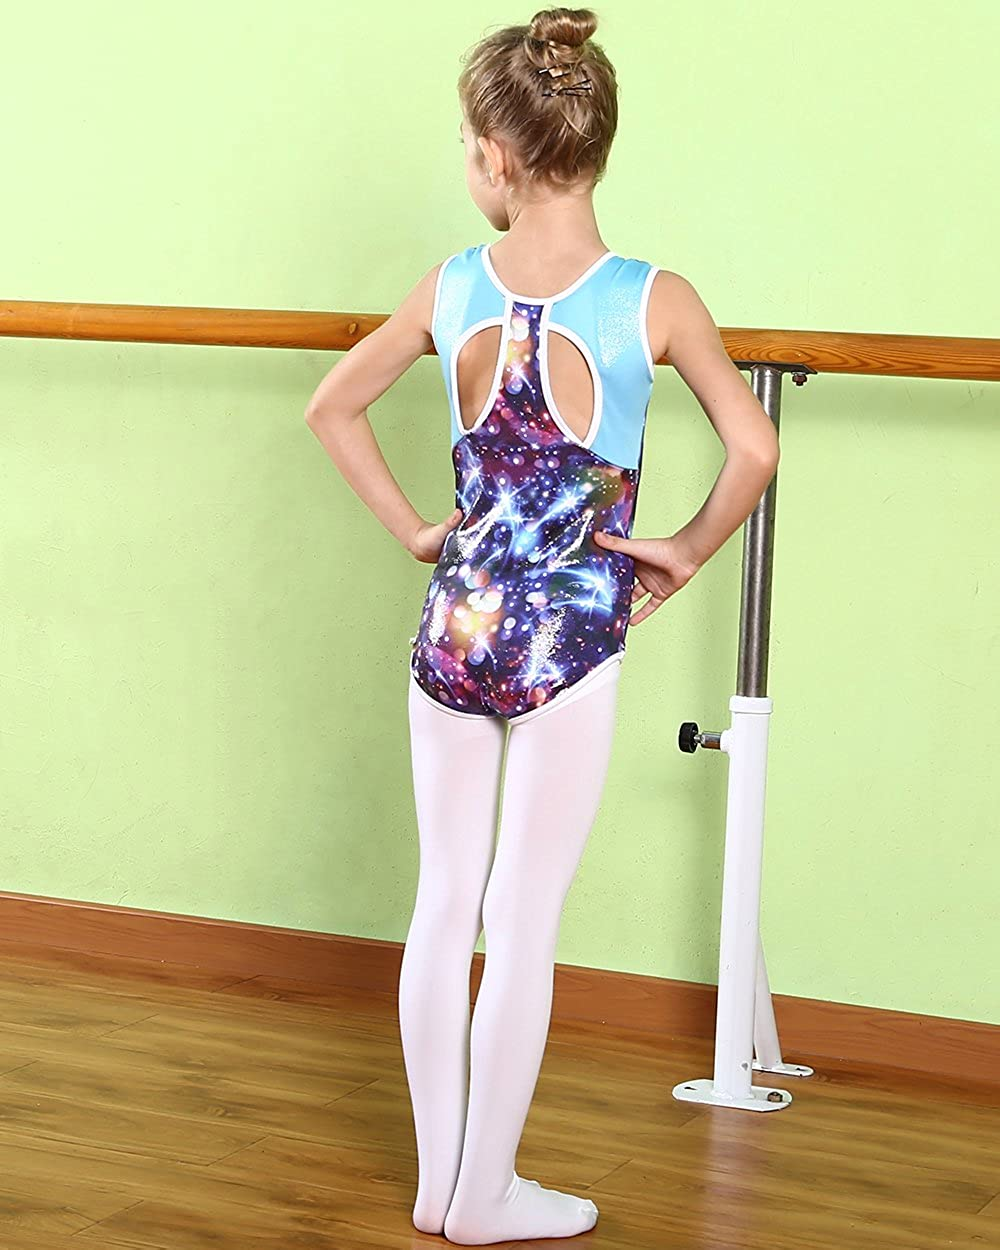 BAOHULU Gymnastics Leotards for Toddler Girls Shiny Spliced Athletic Dance Clothes with Hair Scrunchie